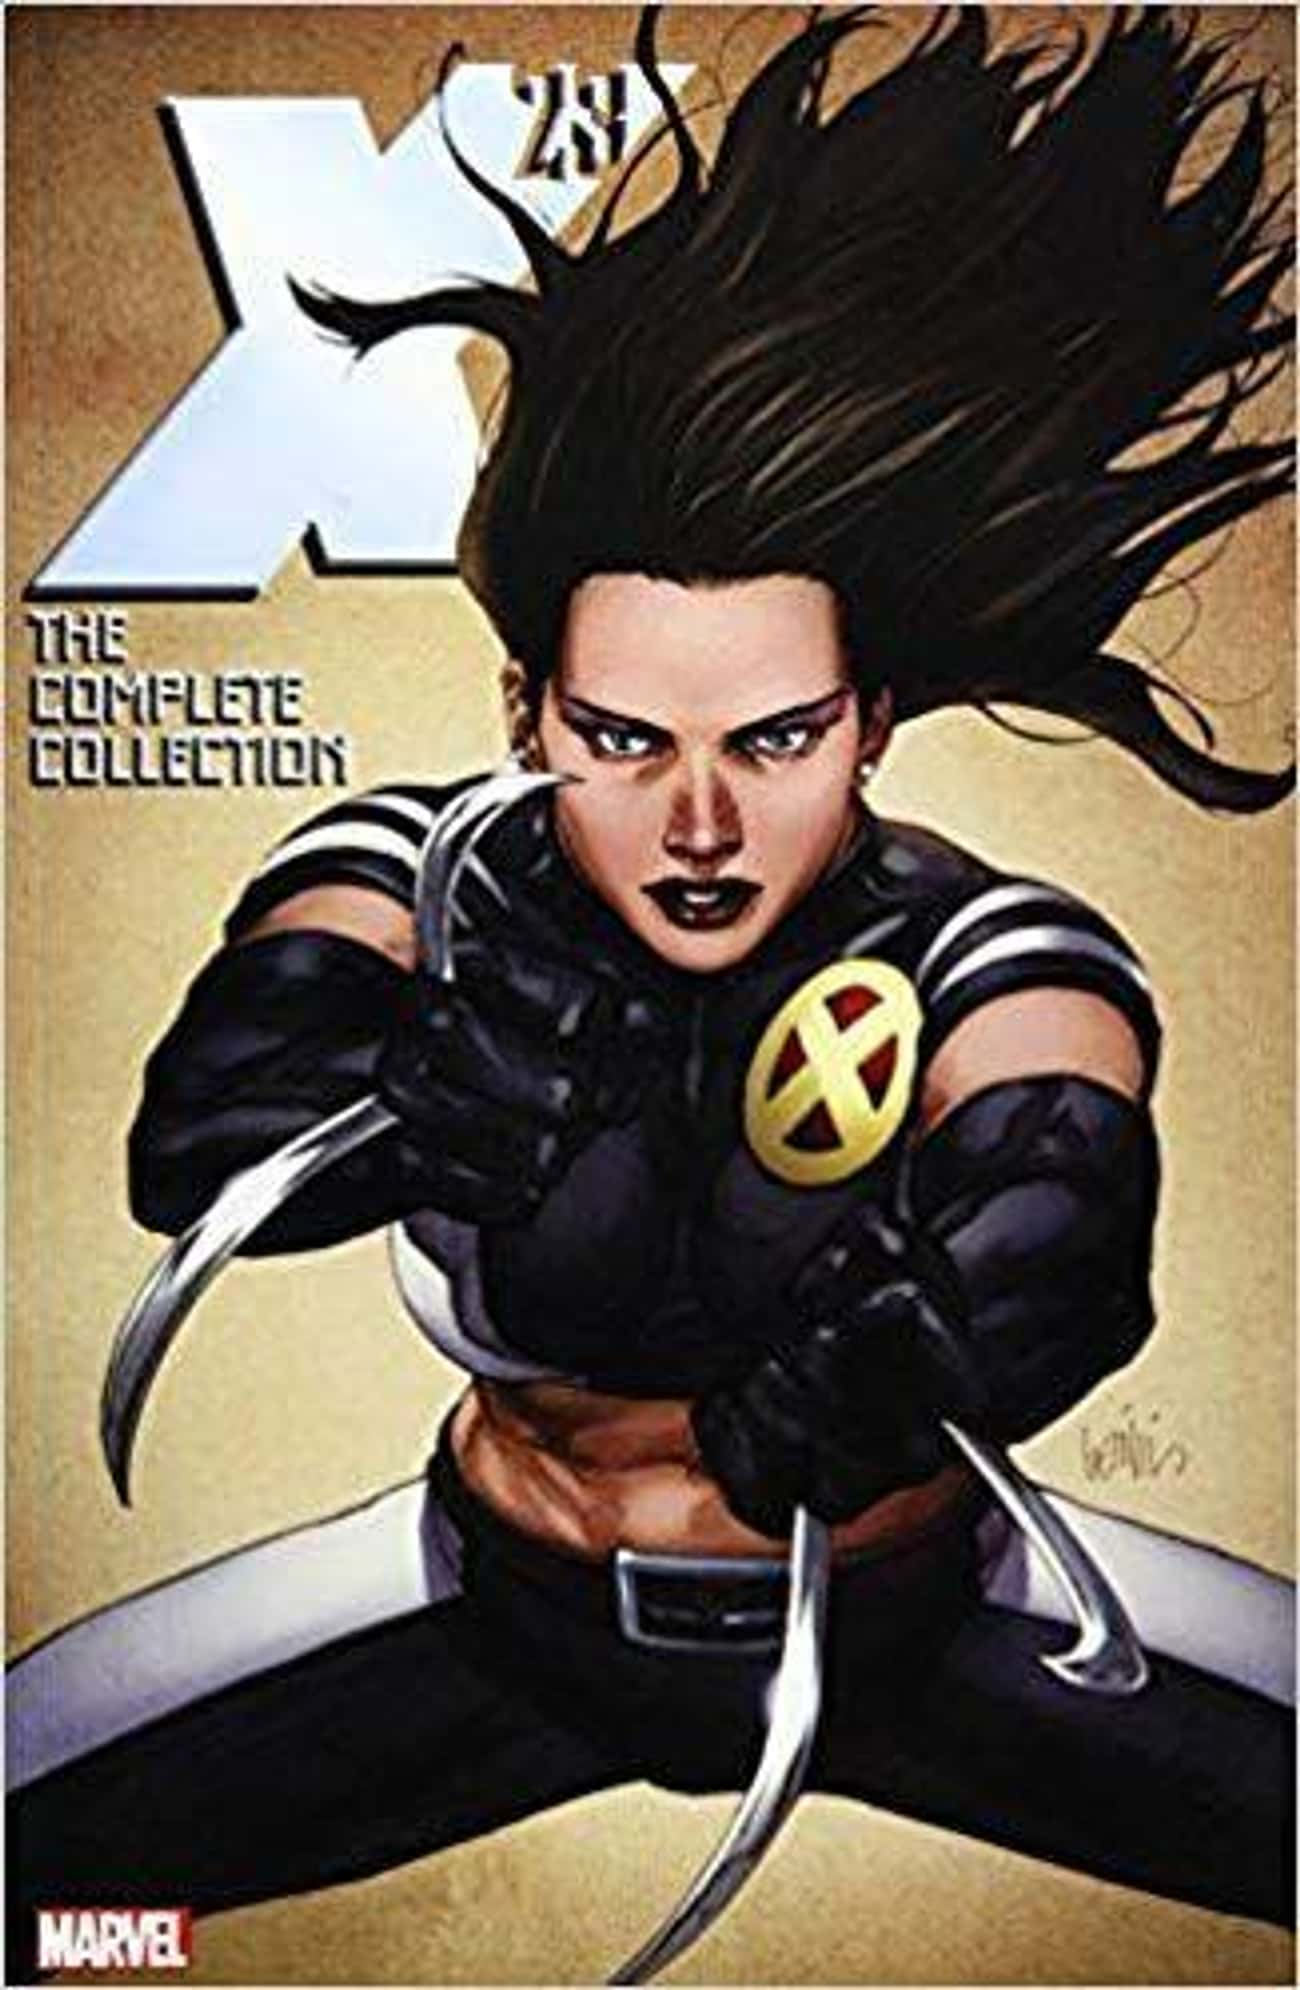 X-23 is listed (or ranked) 4 on the list 10 Gender Swapped Comic Book Characters